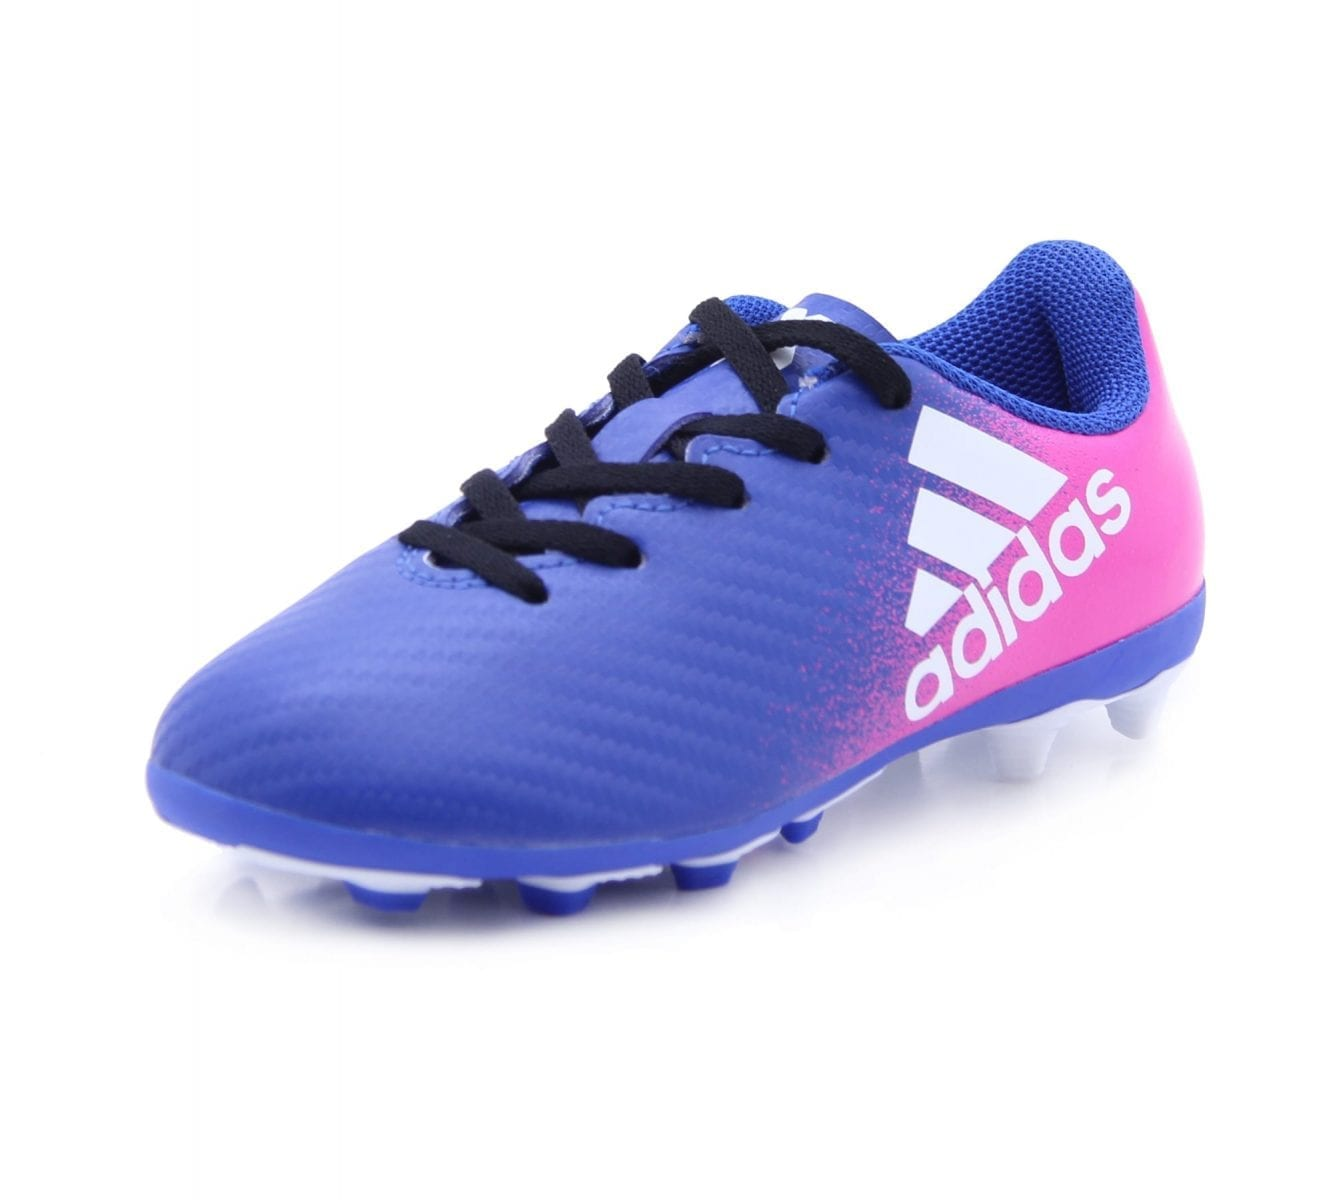 reputable site b7289 e9fcf adidas x16.4 BB1043